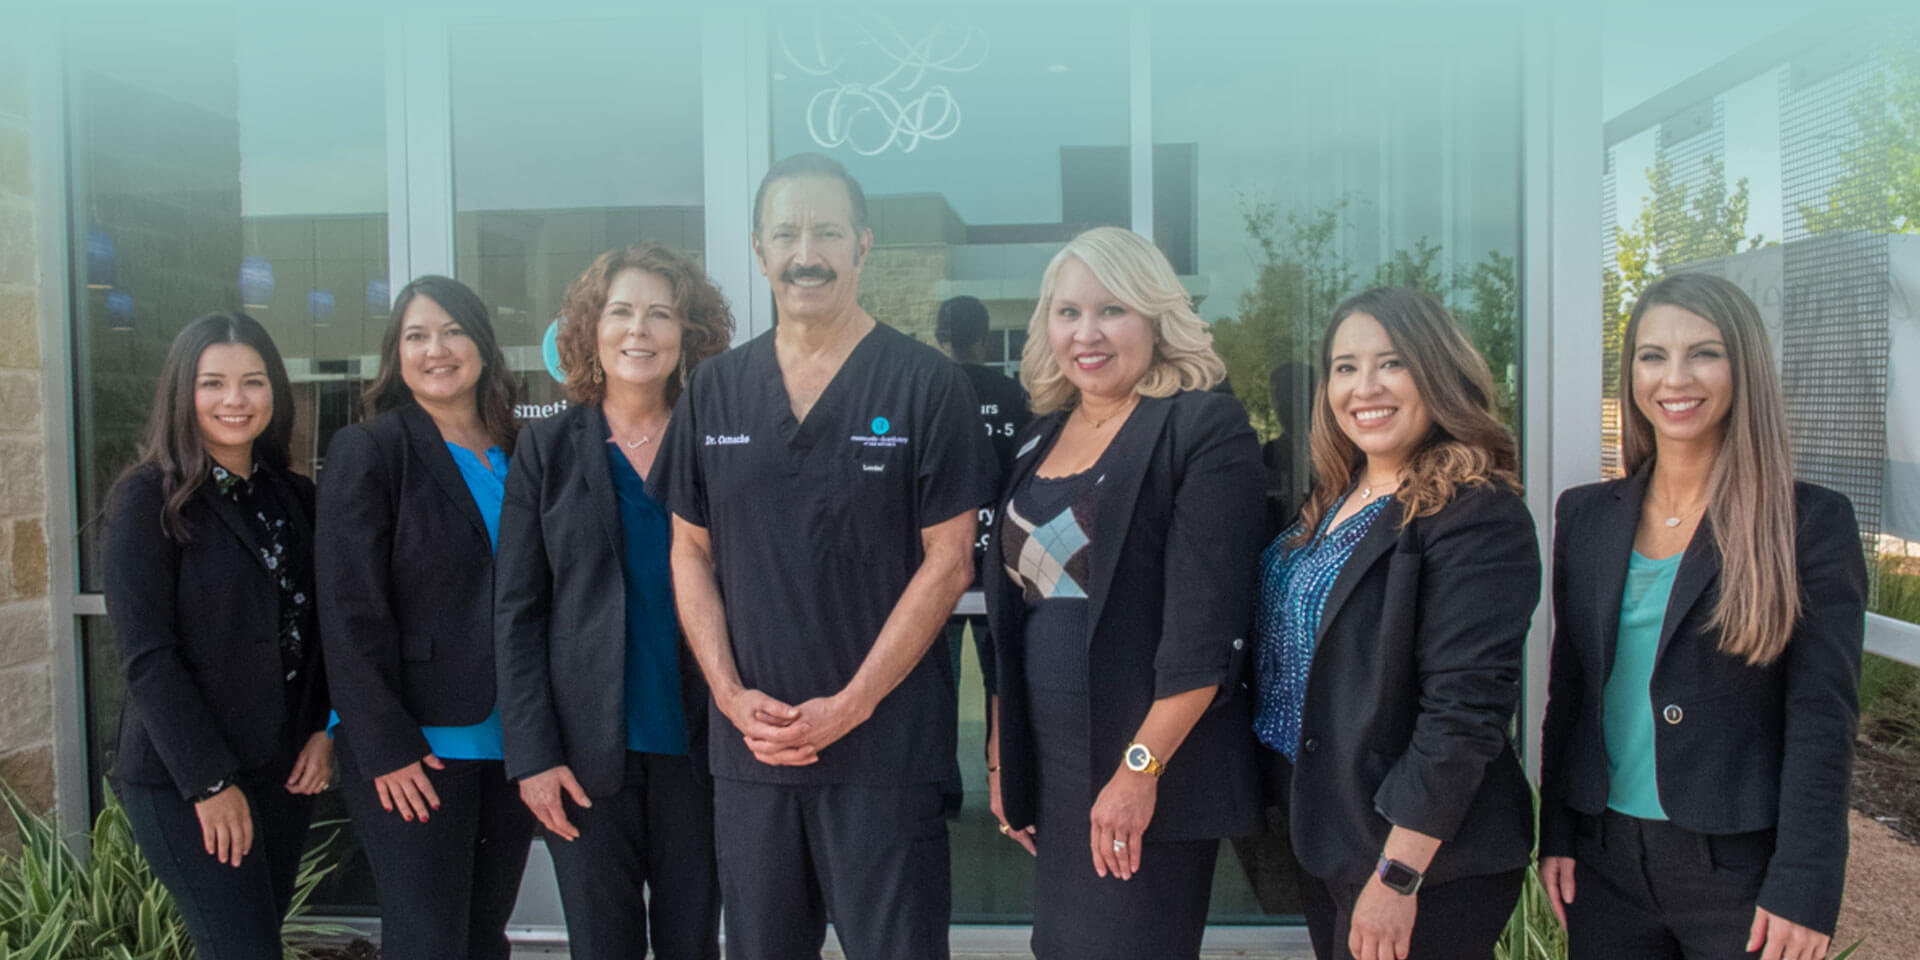 Dental team at Cosmetic Dentistry of San Antonio